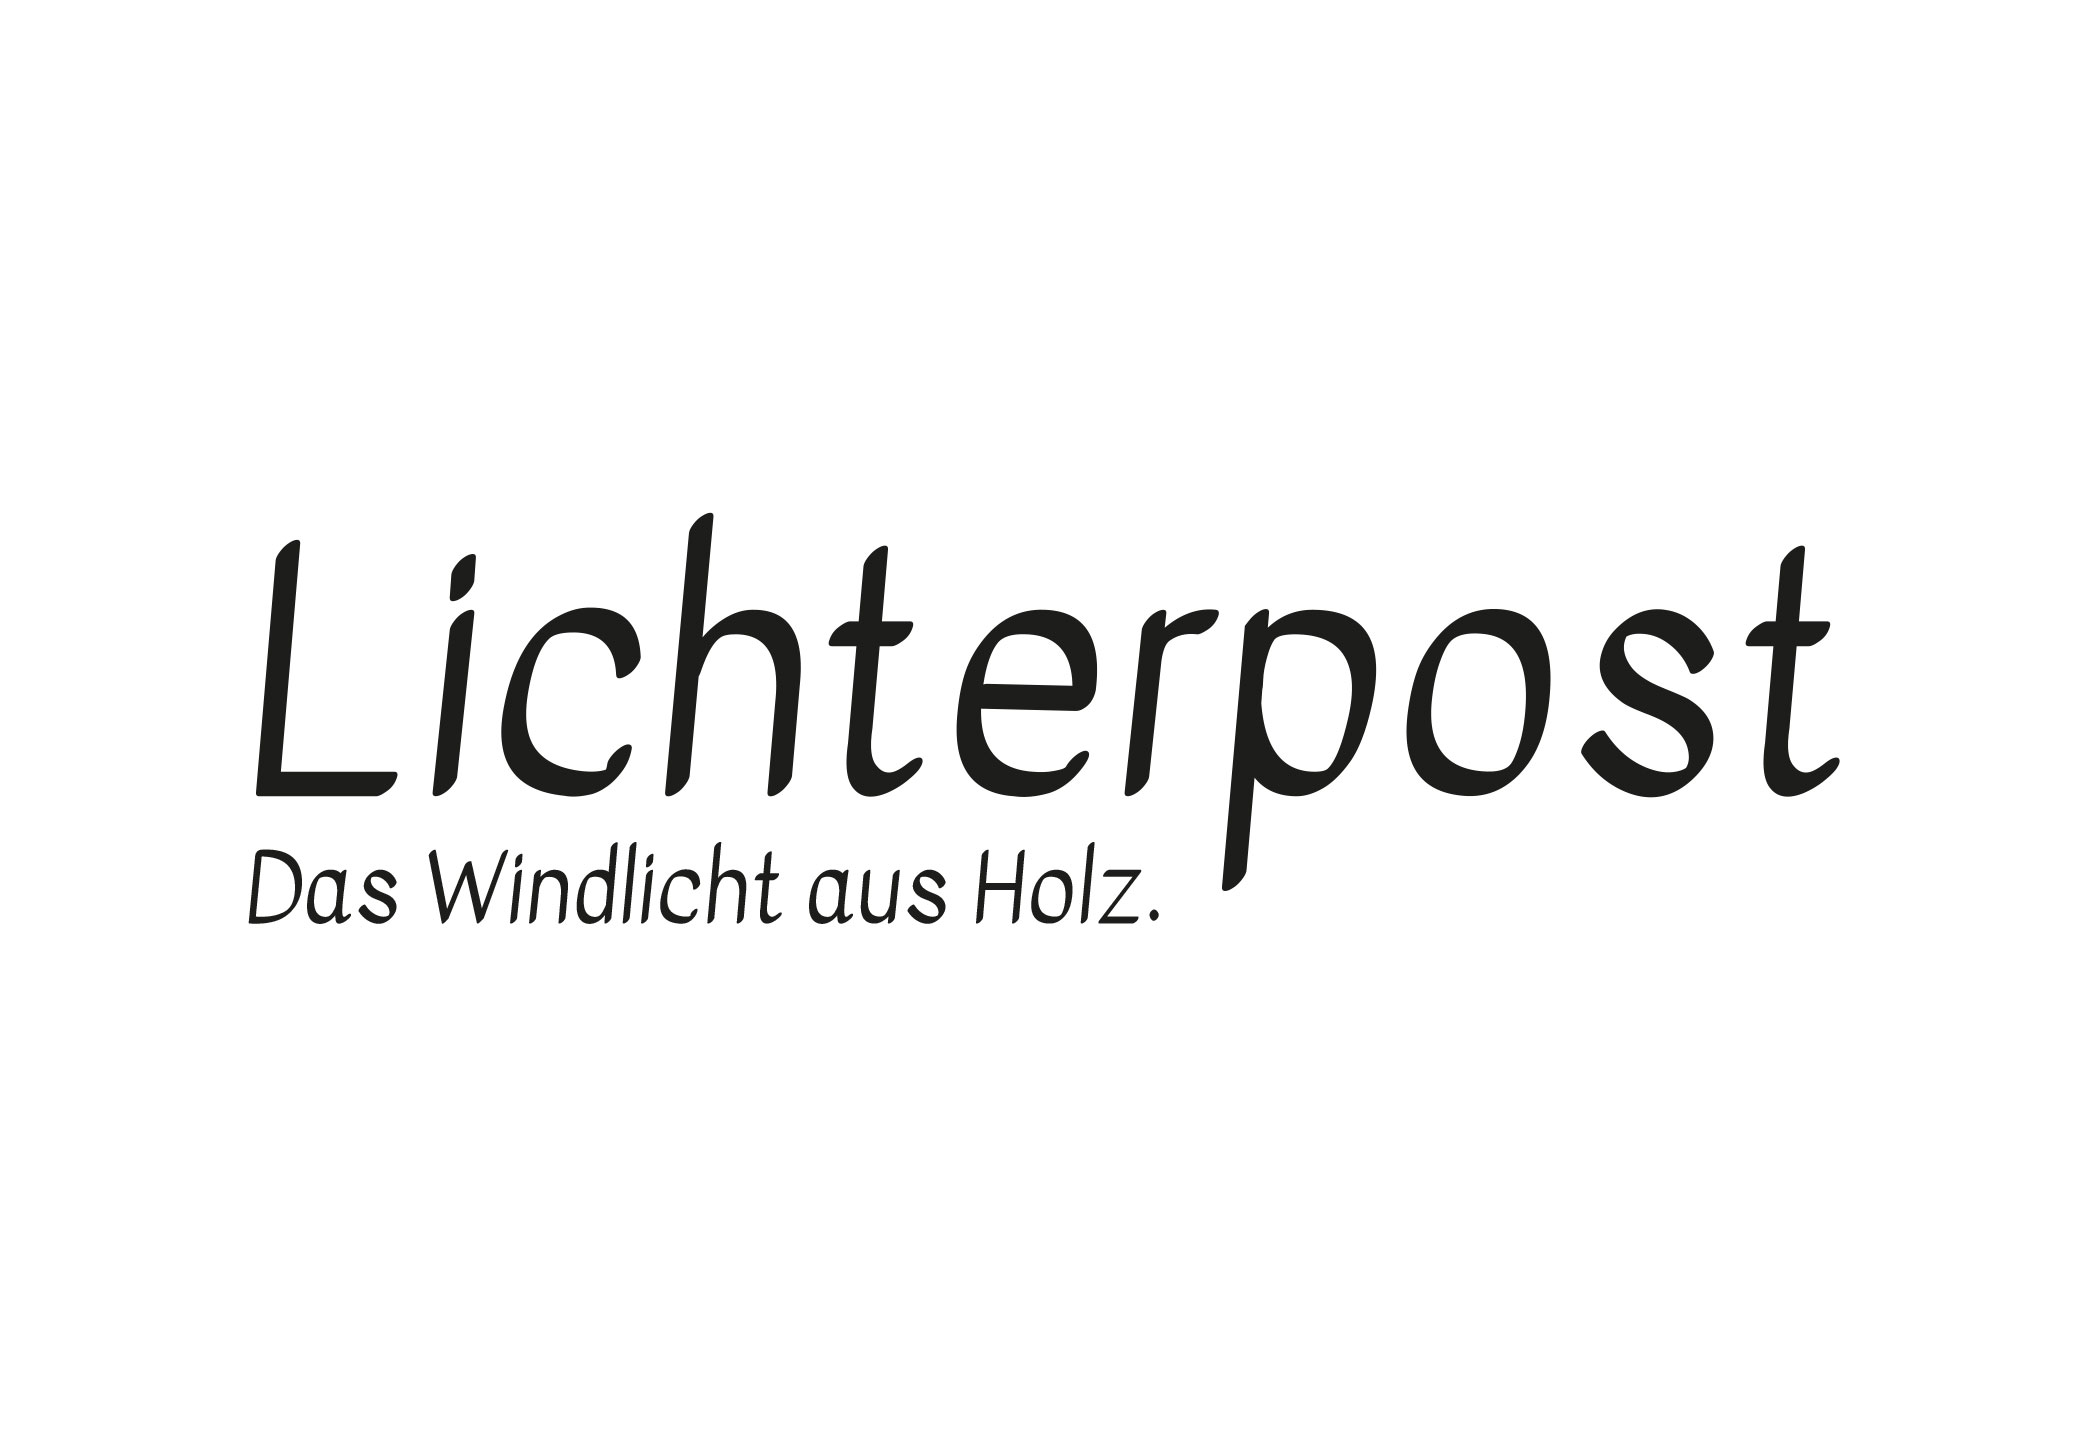 lichterpost_02